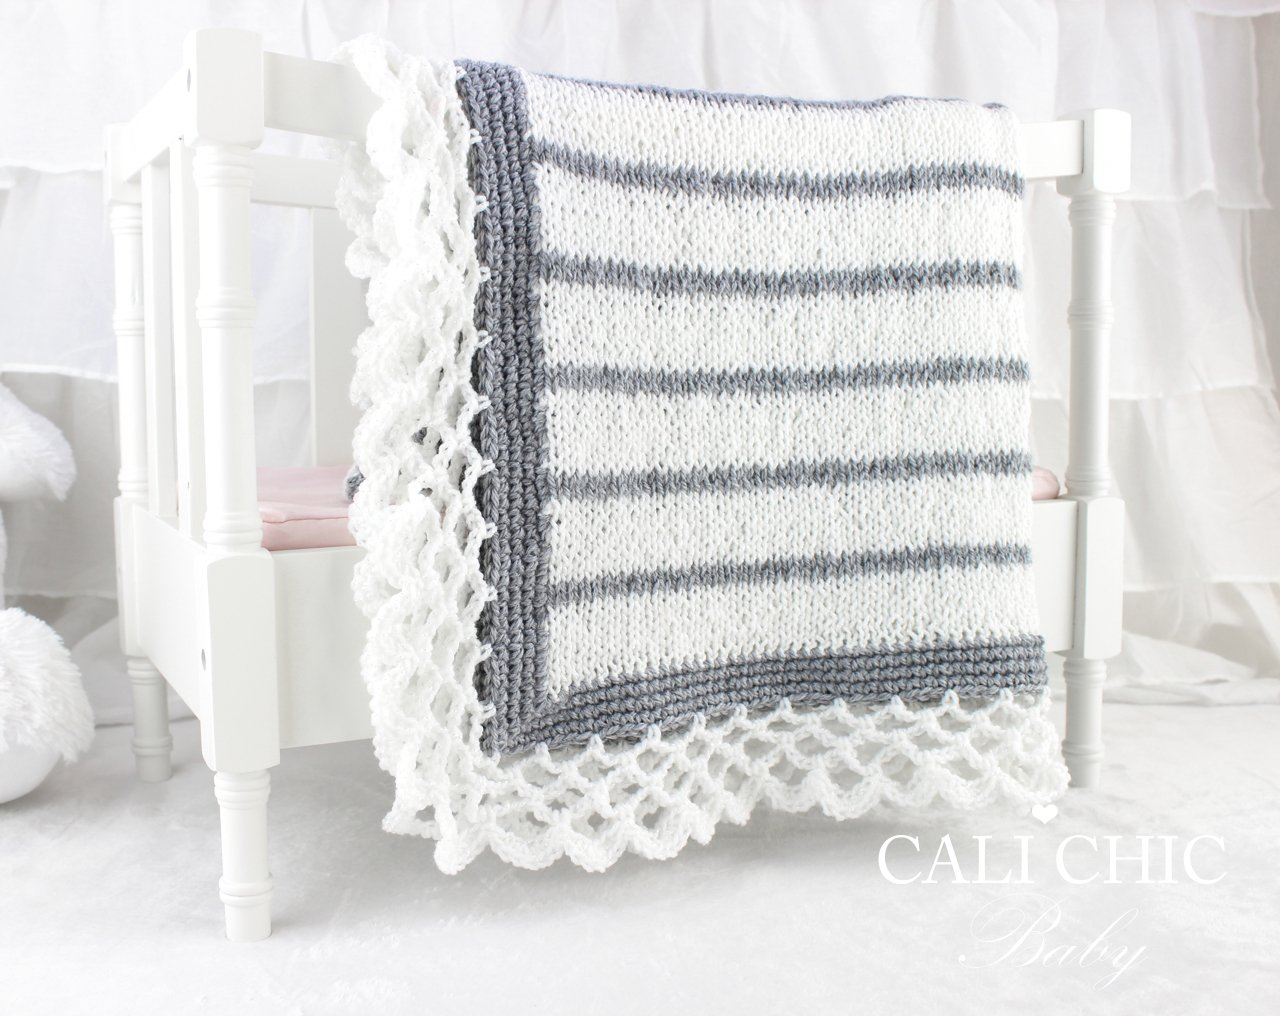 Crystal Laceknitbaby Blanketpattern 68 Cali Chic Baby